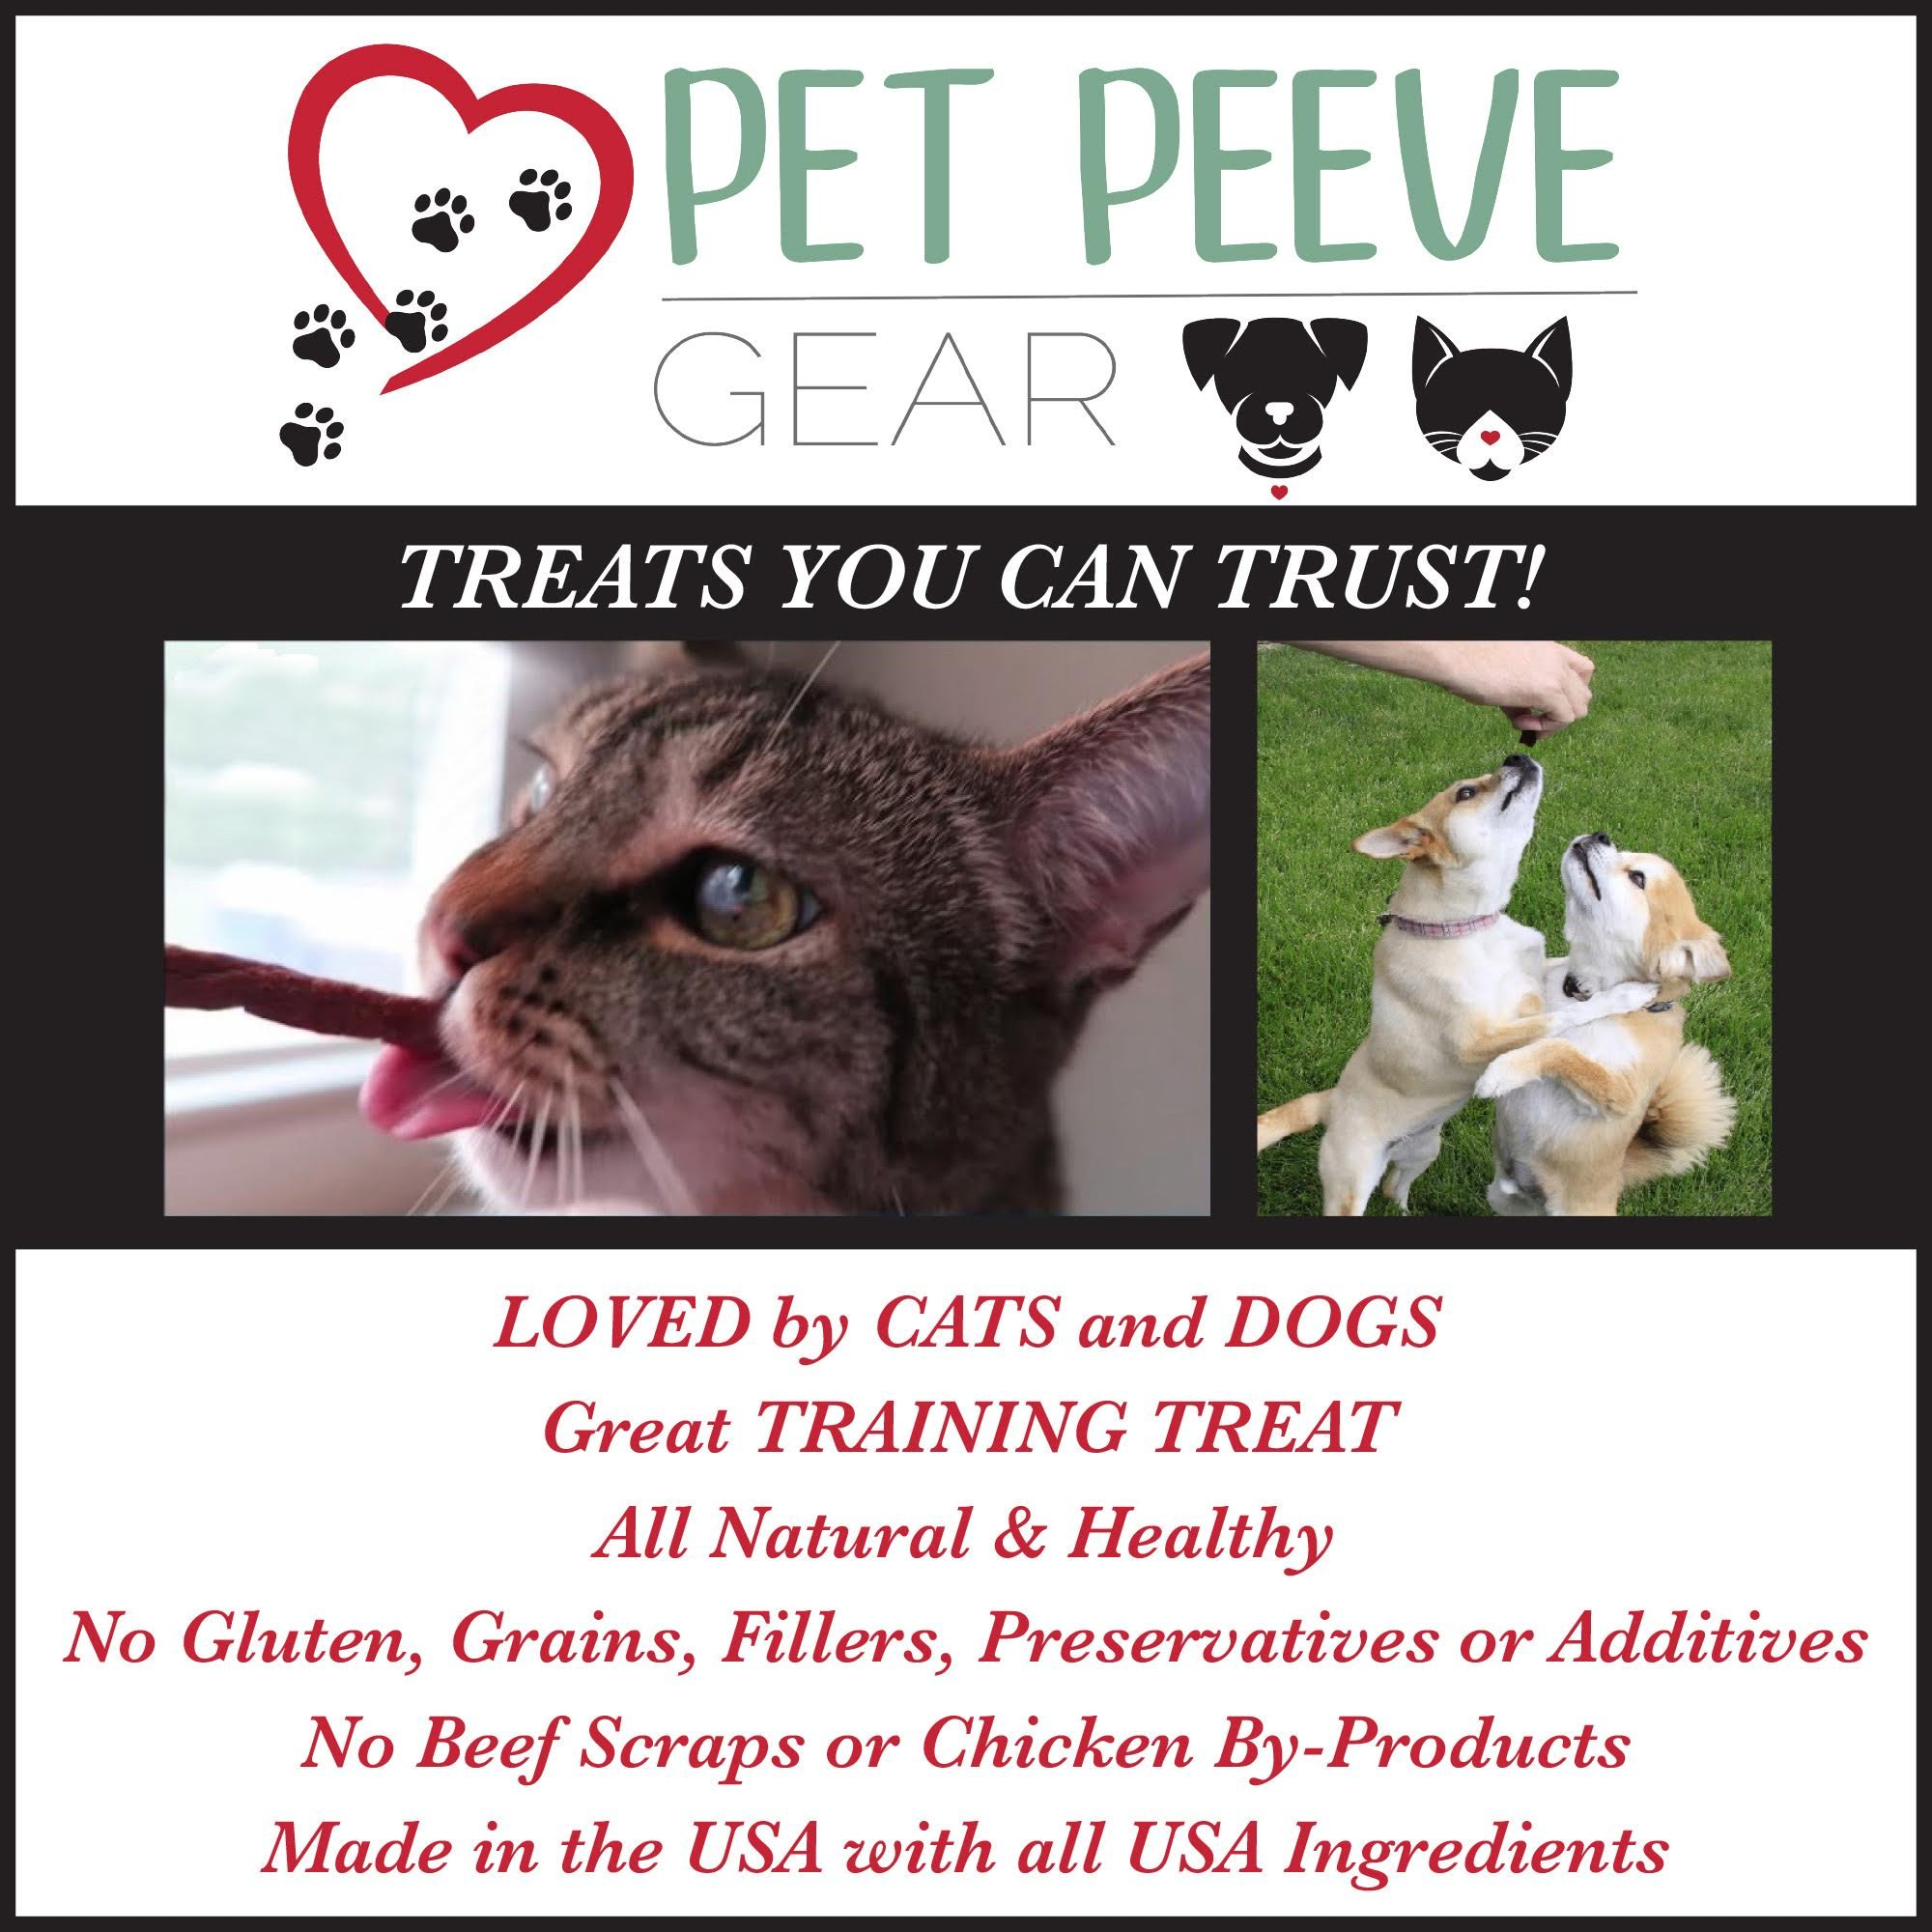 Best Dog Treats, All NATURAL Dog Jerky Treats Made in USA ONLY, 2 Premium Flavors in 1 bag, Chicken & Beef Strips, Healthy Teeth, Grain & Gluten Free, Great Diabetic Treat, Training, Dental Chews by Pet Peeve Gear (Image #1)